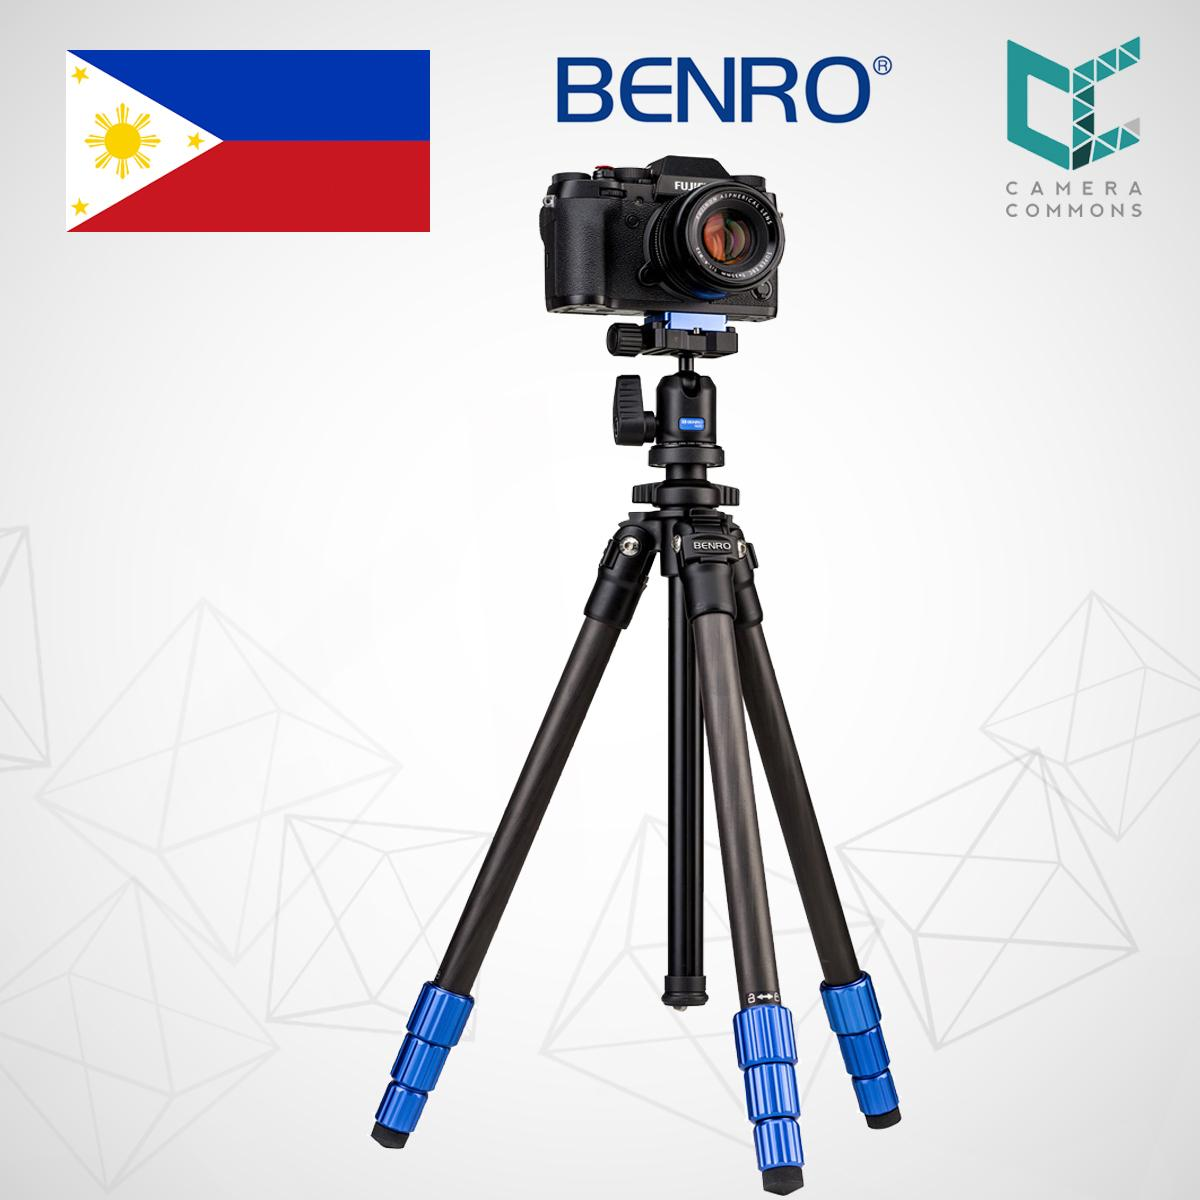 Benro Tripods Philippines Camera For Sale Prices A1883fs2c Aero 2 Video Travel Angel Tripod Tsl08cn00 Slim Carbon Fiber With Ball Head